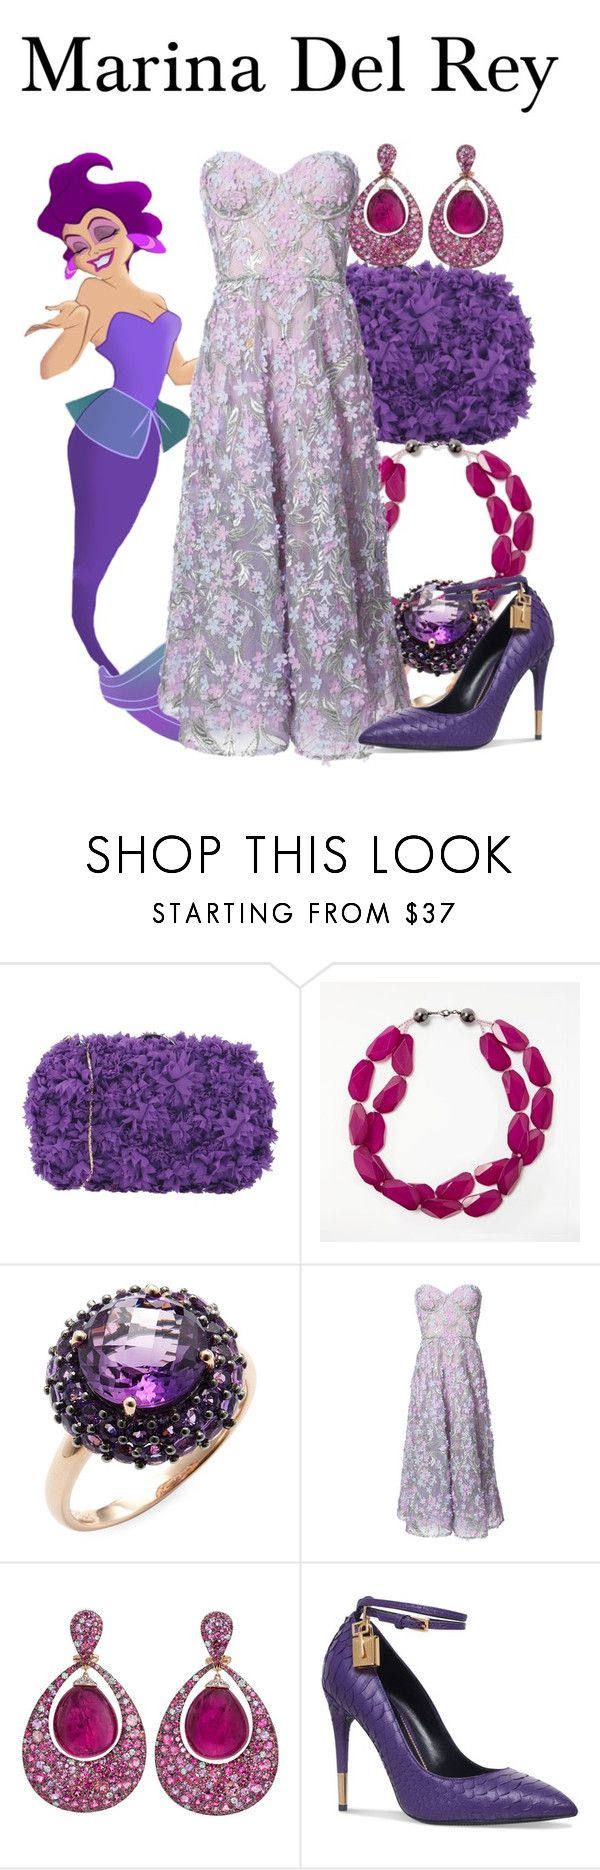 """""""Marina Del Rey"""" by megan-vanwinkle ❤ liked on Polyvore featuring Chiara P, John Lewis, Effy Jewelry, Notte by Marchesa, Margot McKinney, Tom Ford, disney and polyvoreeditorial"""